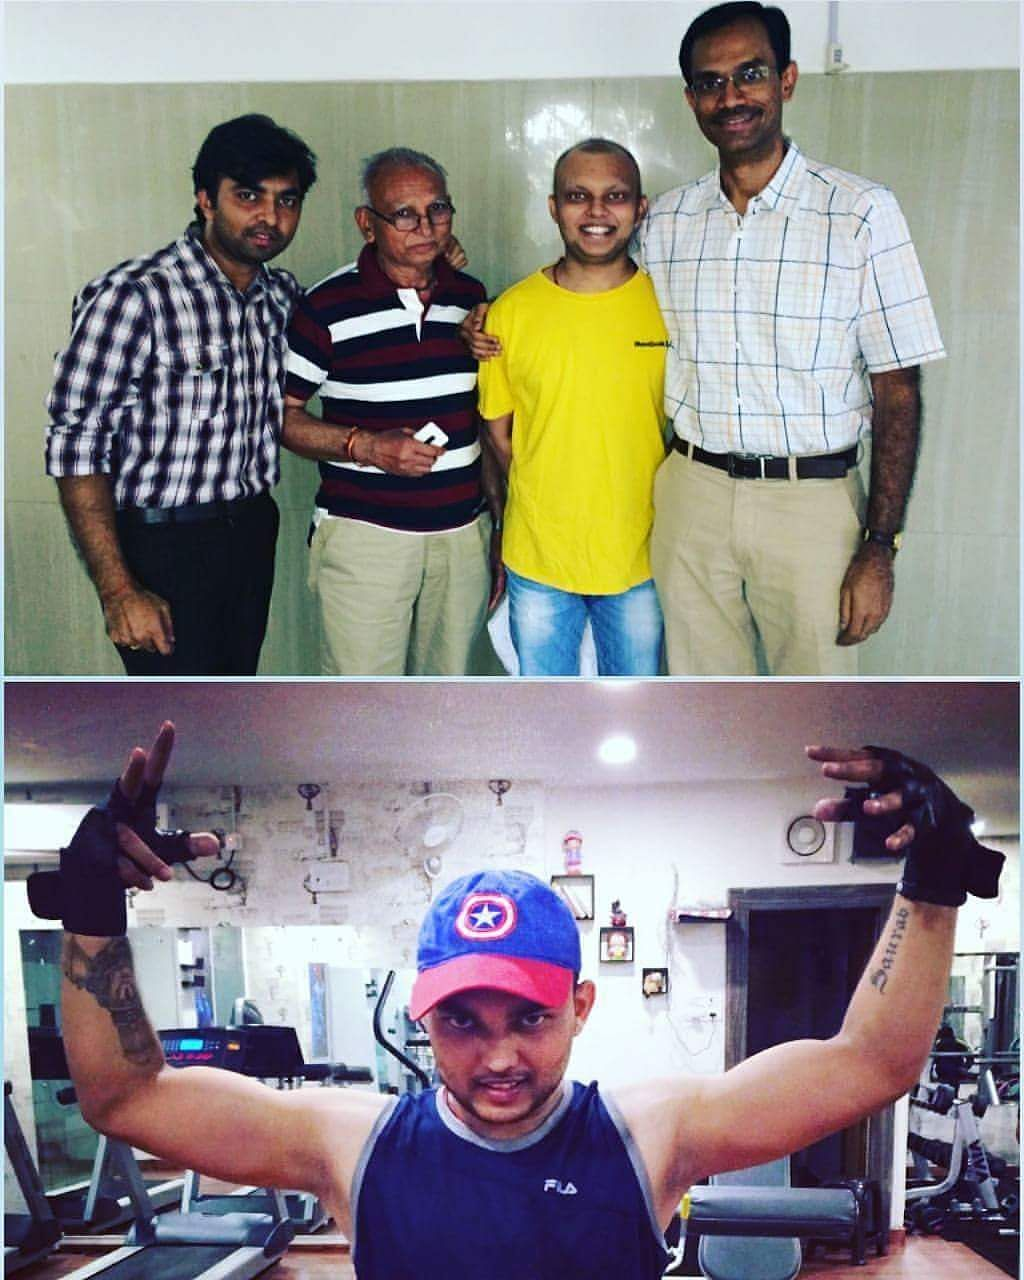 Harteij, as he battled cancer and took to gyming to improve his immunity.